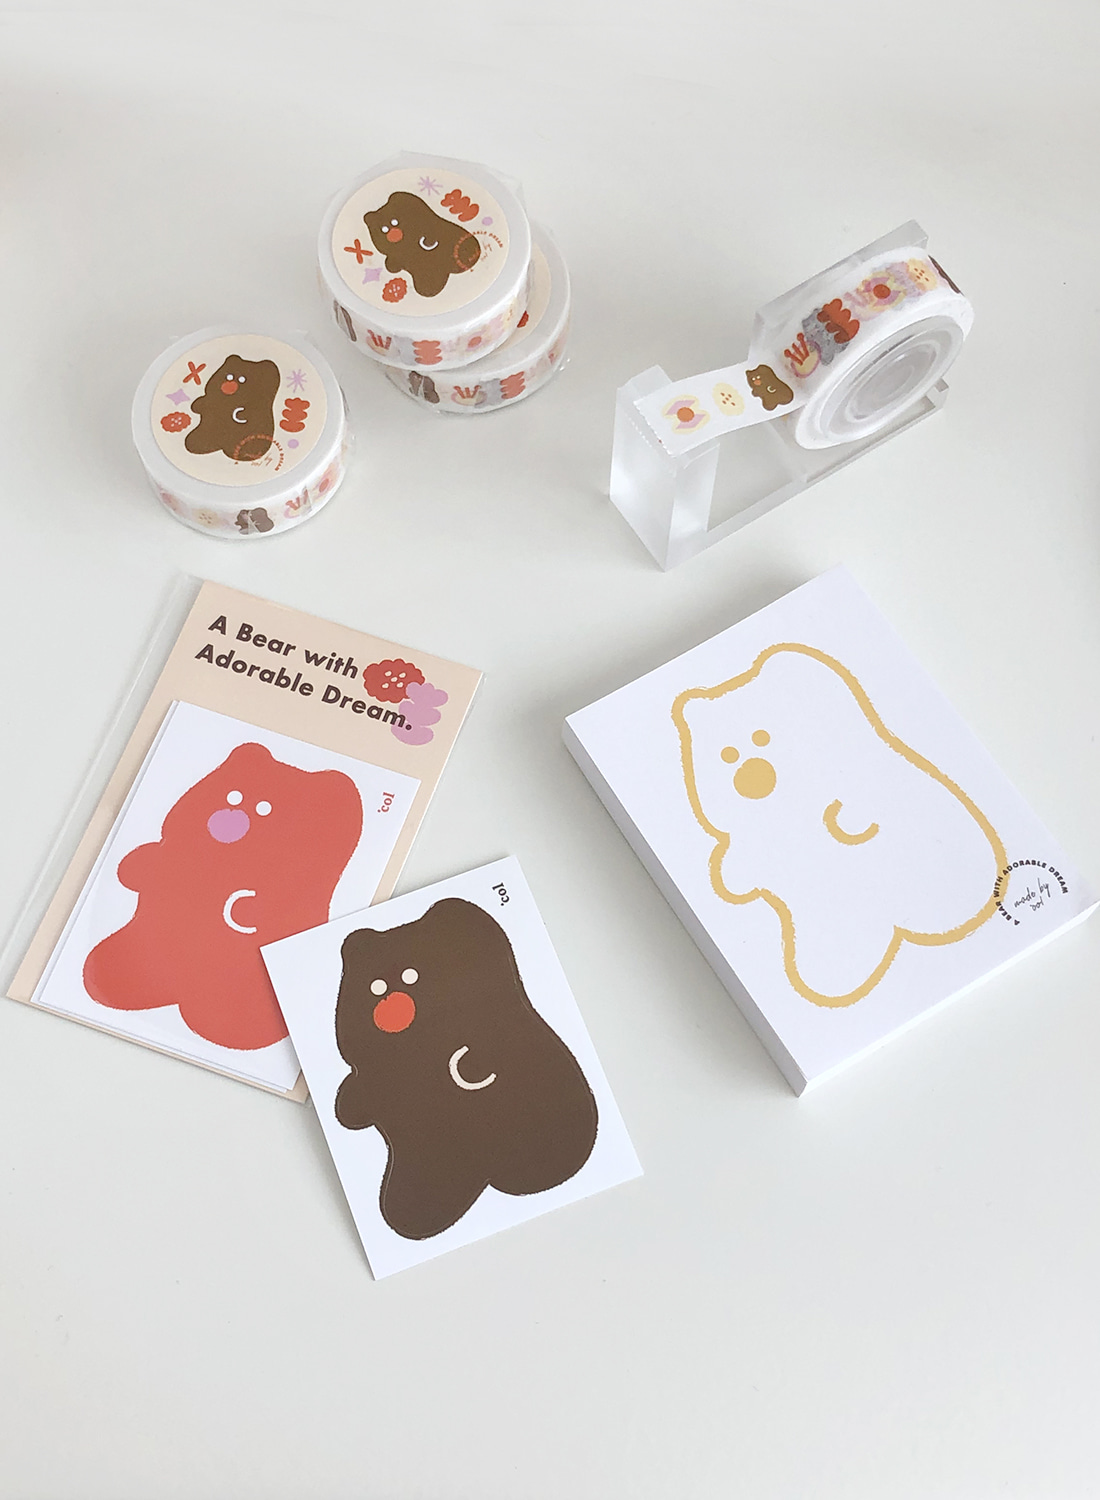 Dreaming Bear Stationery (단품&세트)